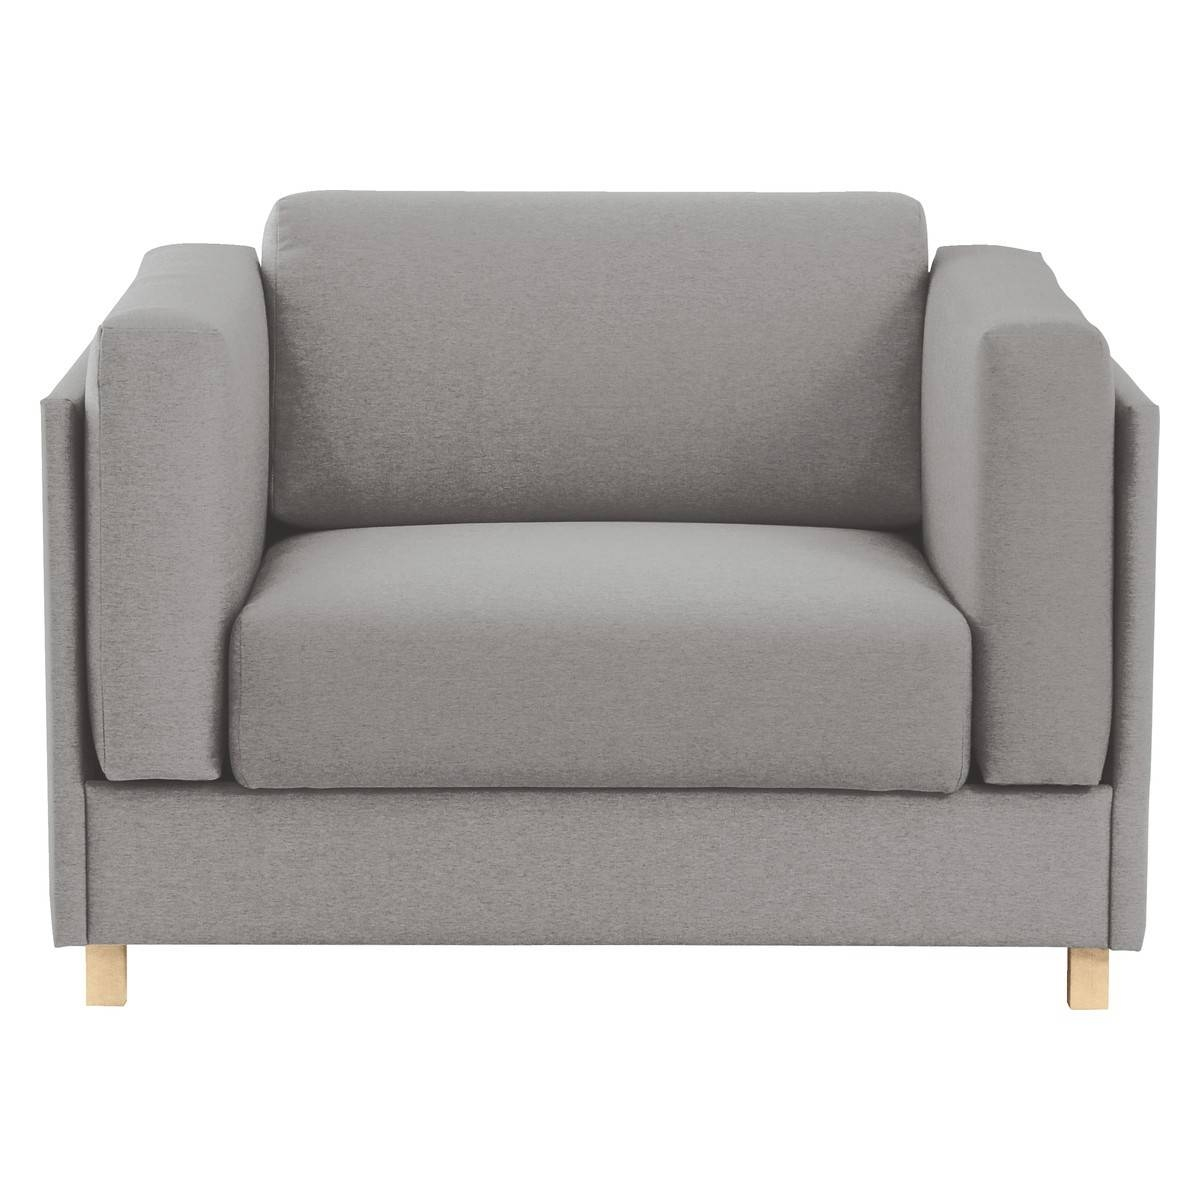 Colombo Grey Fabric Armchair Sofa Bed | Buy Now At Habitat Uk with Sofa Chairs for Bedroom (Image 7 of 15)